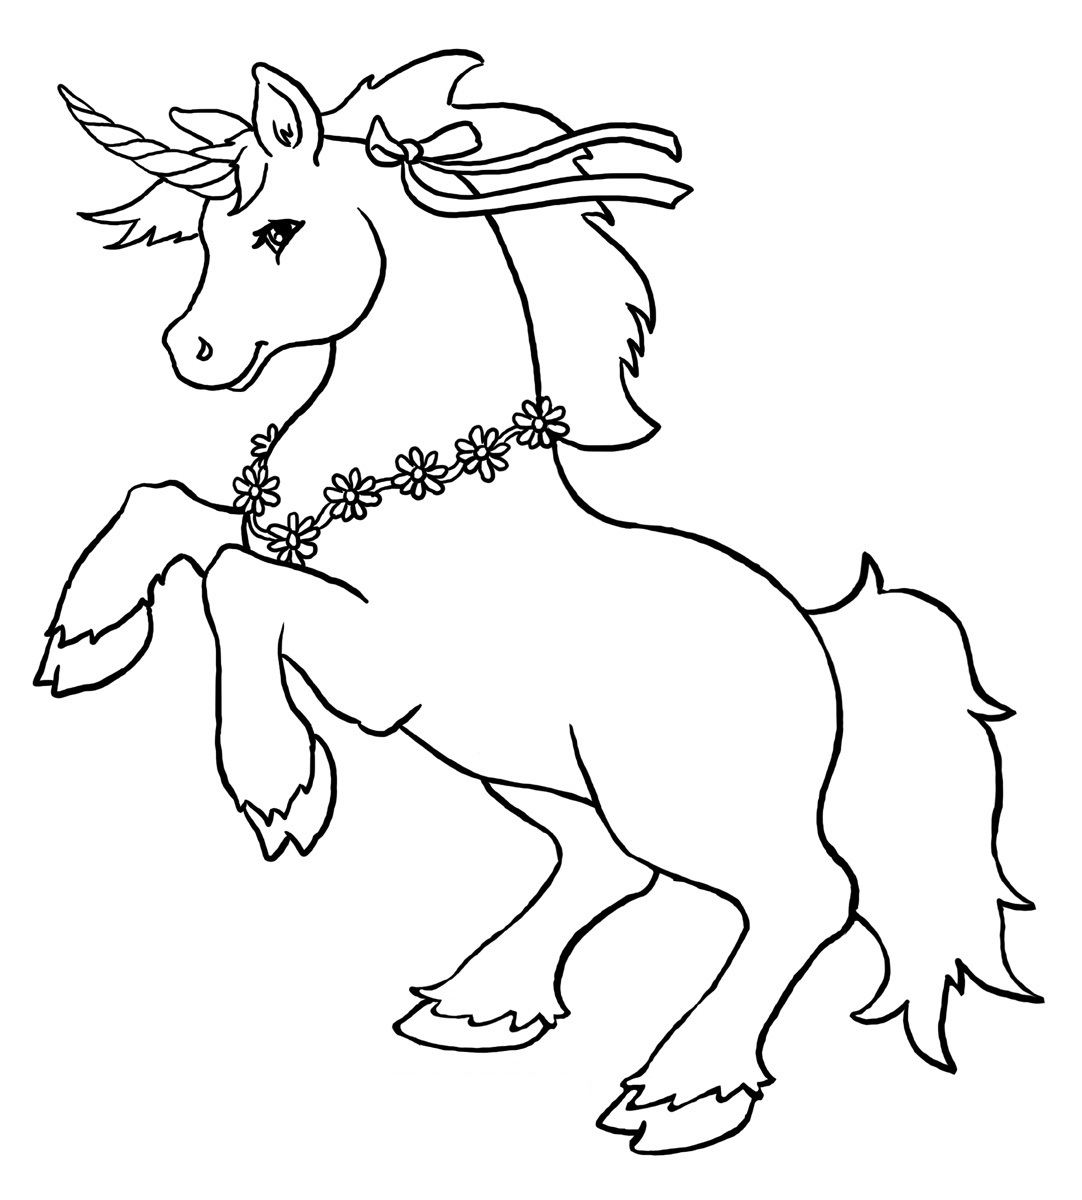 Coloring Pages Unicorn Coloring Pages Online free printable unicorn coloring pages for kids cute pages